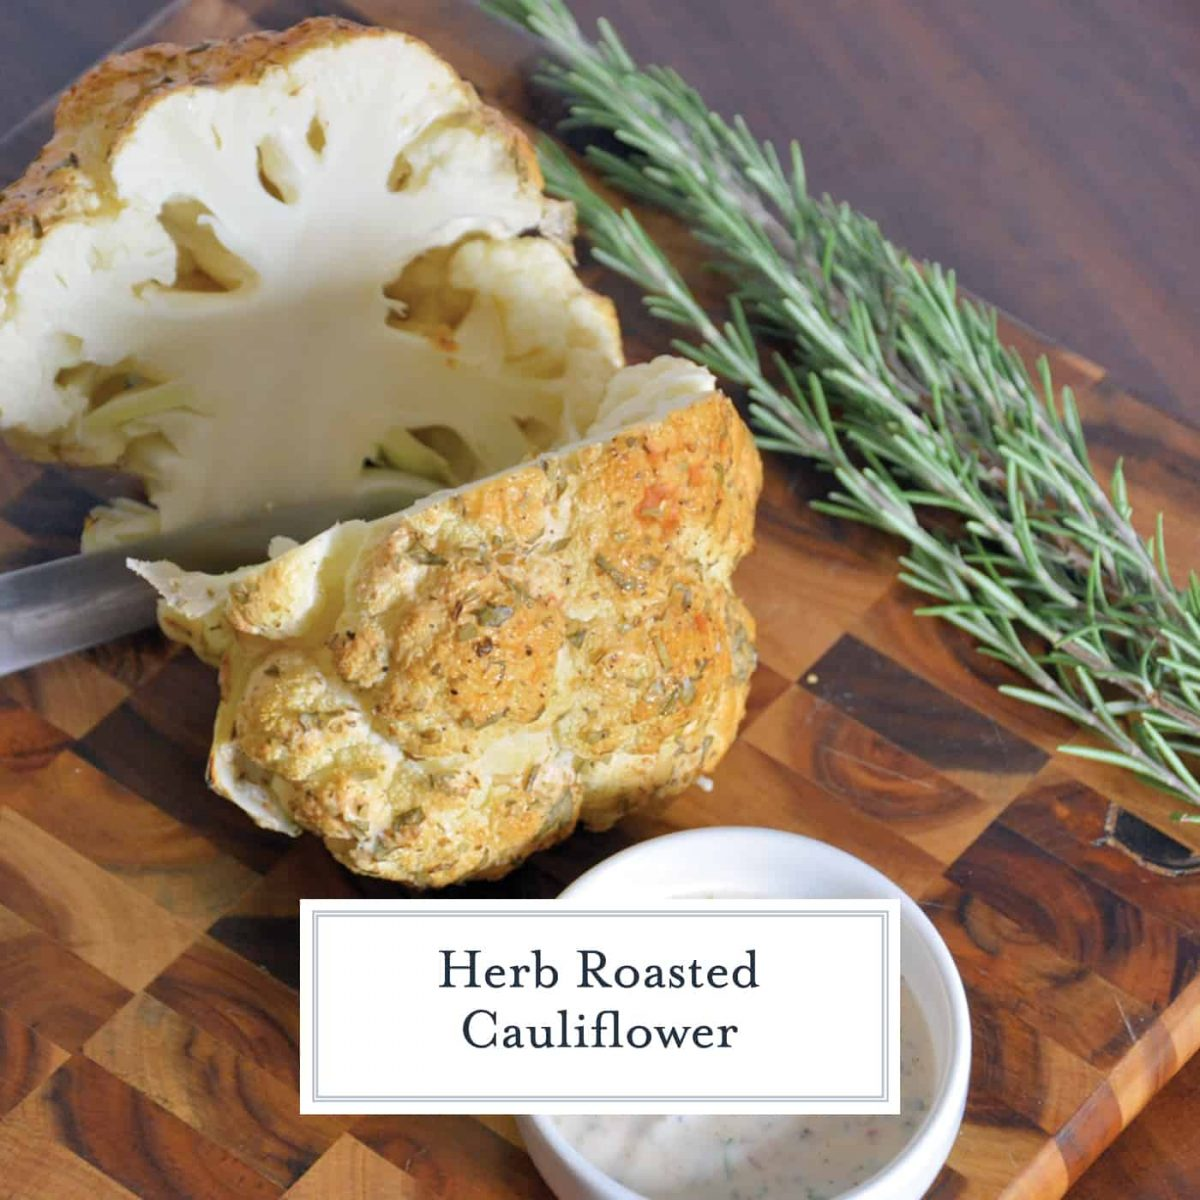 Herb Roasted Cauliflower uses a whole head of cauliflower, covers it in a yogurt and fresh herb blend and then roasts it to perfection. A healthy, low carb side dish! #cauliflowersidedishrecipe www.savoryexperiments.com